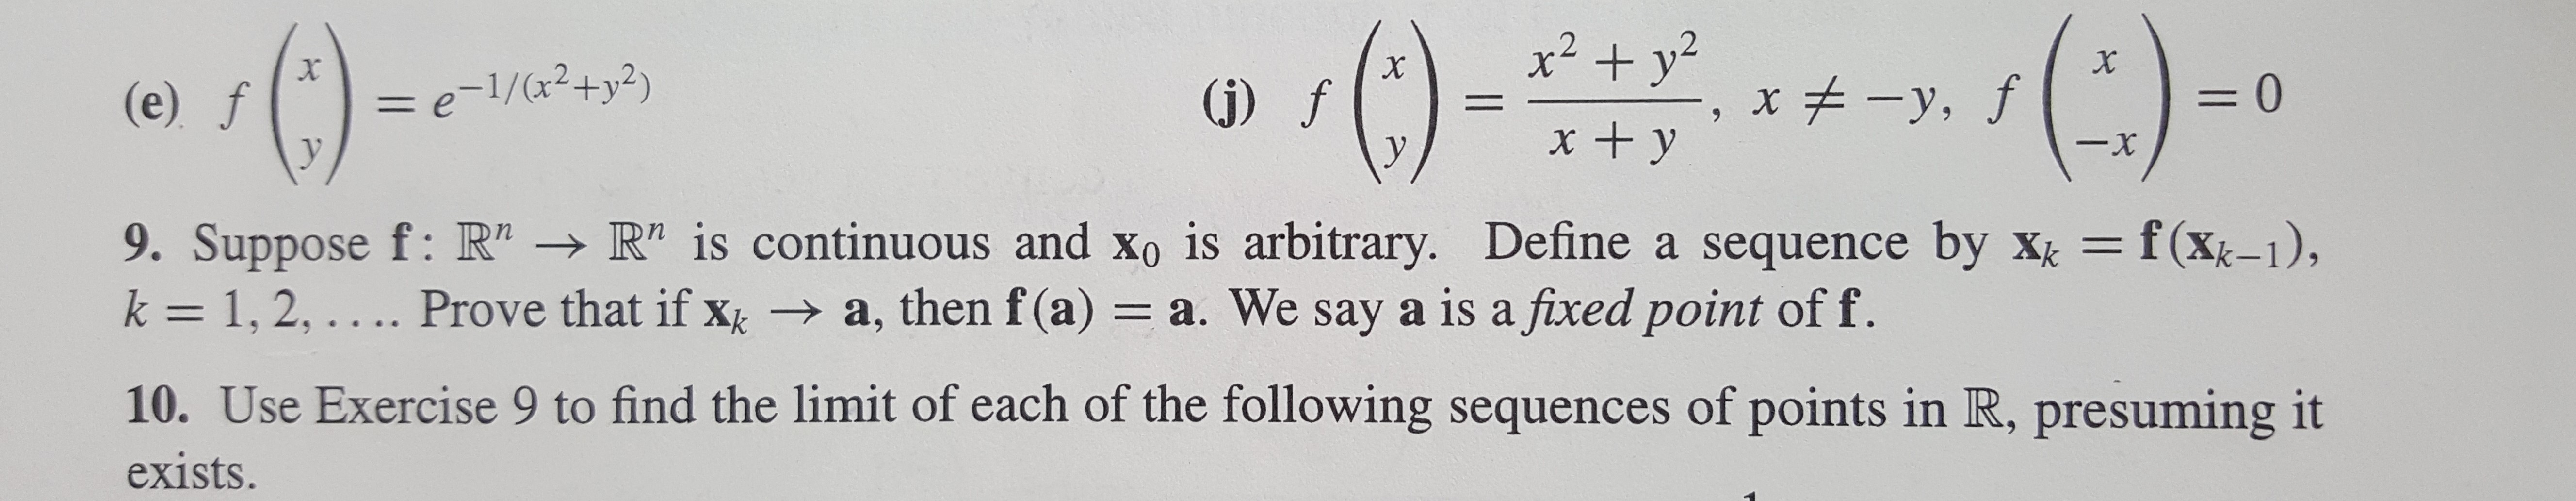 """x2 +y x , f X = e-1/(x2+y2) = 0 (j) f (e) f 1 x + y -x y 9. Suppose f: R"""" R"""" is continuous and Xo is arbitrary. Define a sequence by xk f(Xk-1), k 1, 2,.... Prove that if x a, then f (a) = a. We say a is a fixed point of f. 10. Use Exercise 9 to find the limit of each of the following sequences of points in R, presuming it exists."""